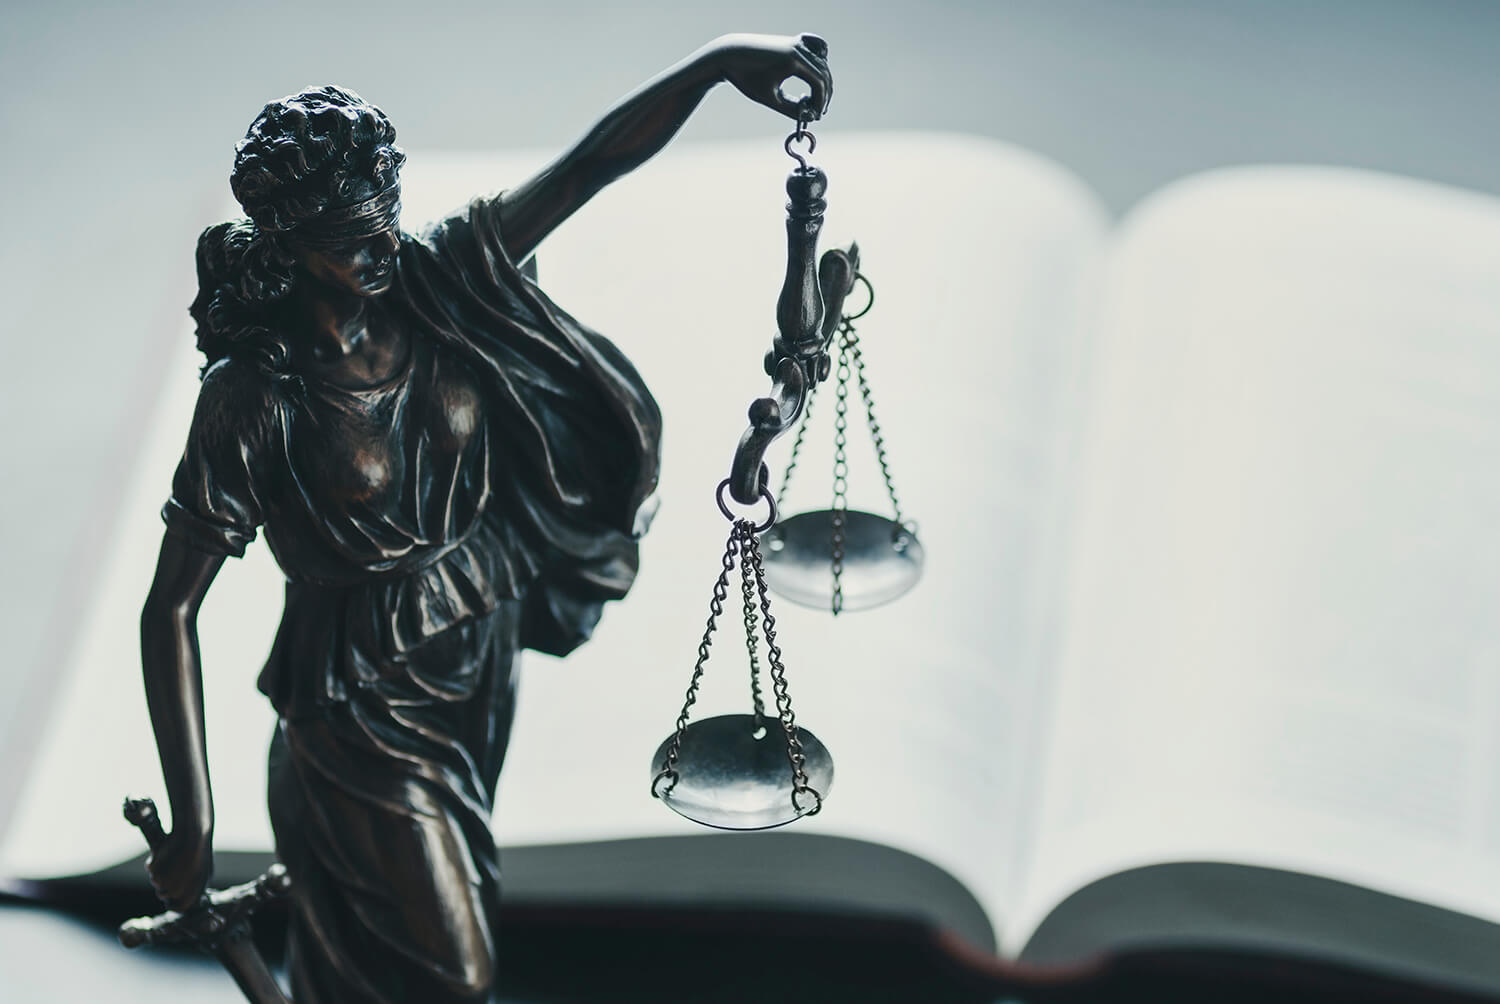 justice with scales